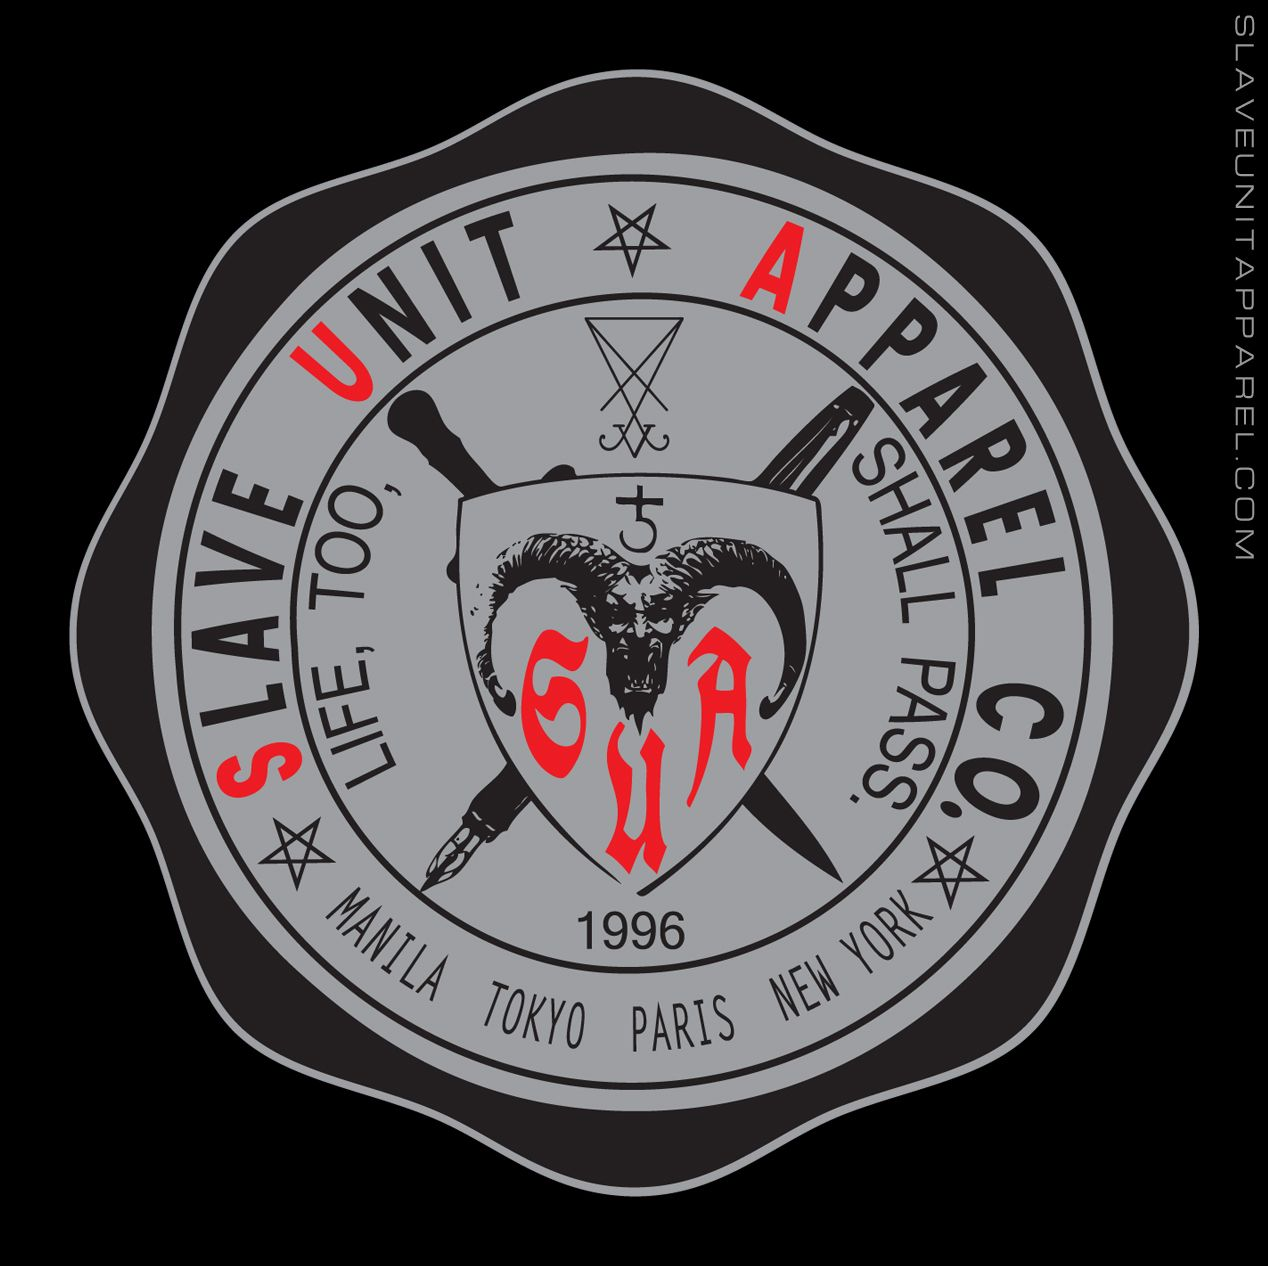 """The Slave Unit Apparel School Seal Tee's embellishments include a demon which represents past experiences that build character, the proverbial pen (words) and sword - both known to cut deep and sever - and the phrase """"Life, too, shall pass"""" as a homage to mortality. Inspired by Catholic school seals and labor union logos. Available for a limited time because nothing in life is permanent. Please support small businesses.  tshirt alternative alt slaveunitapparel metal streetstyle streetwear…"""